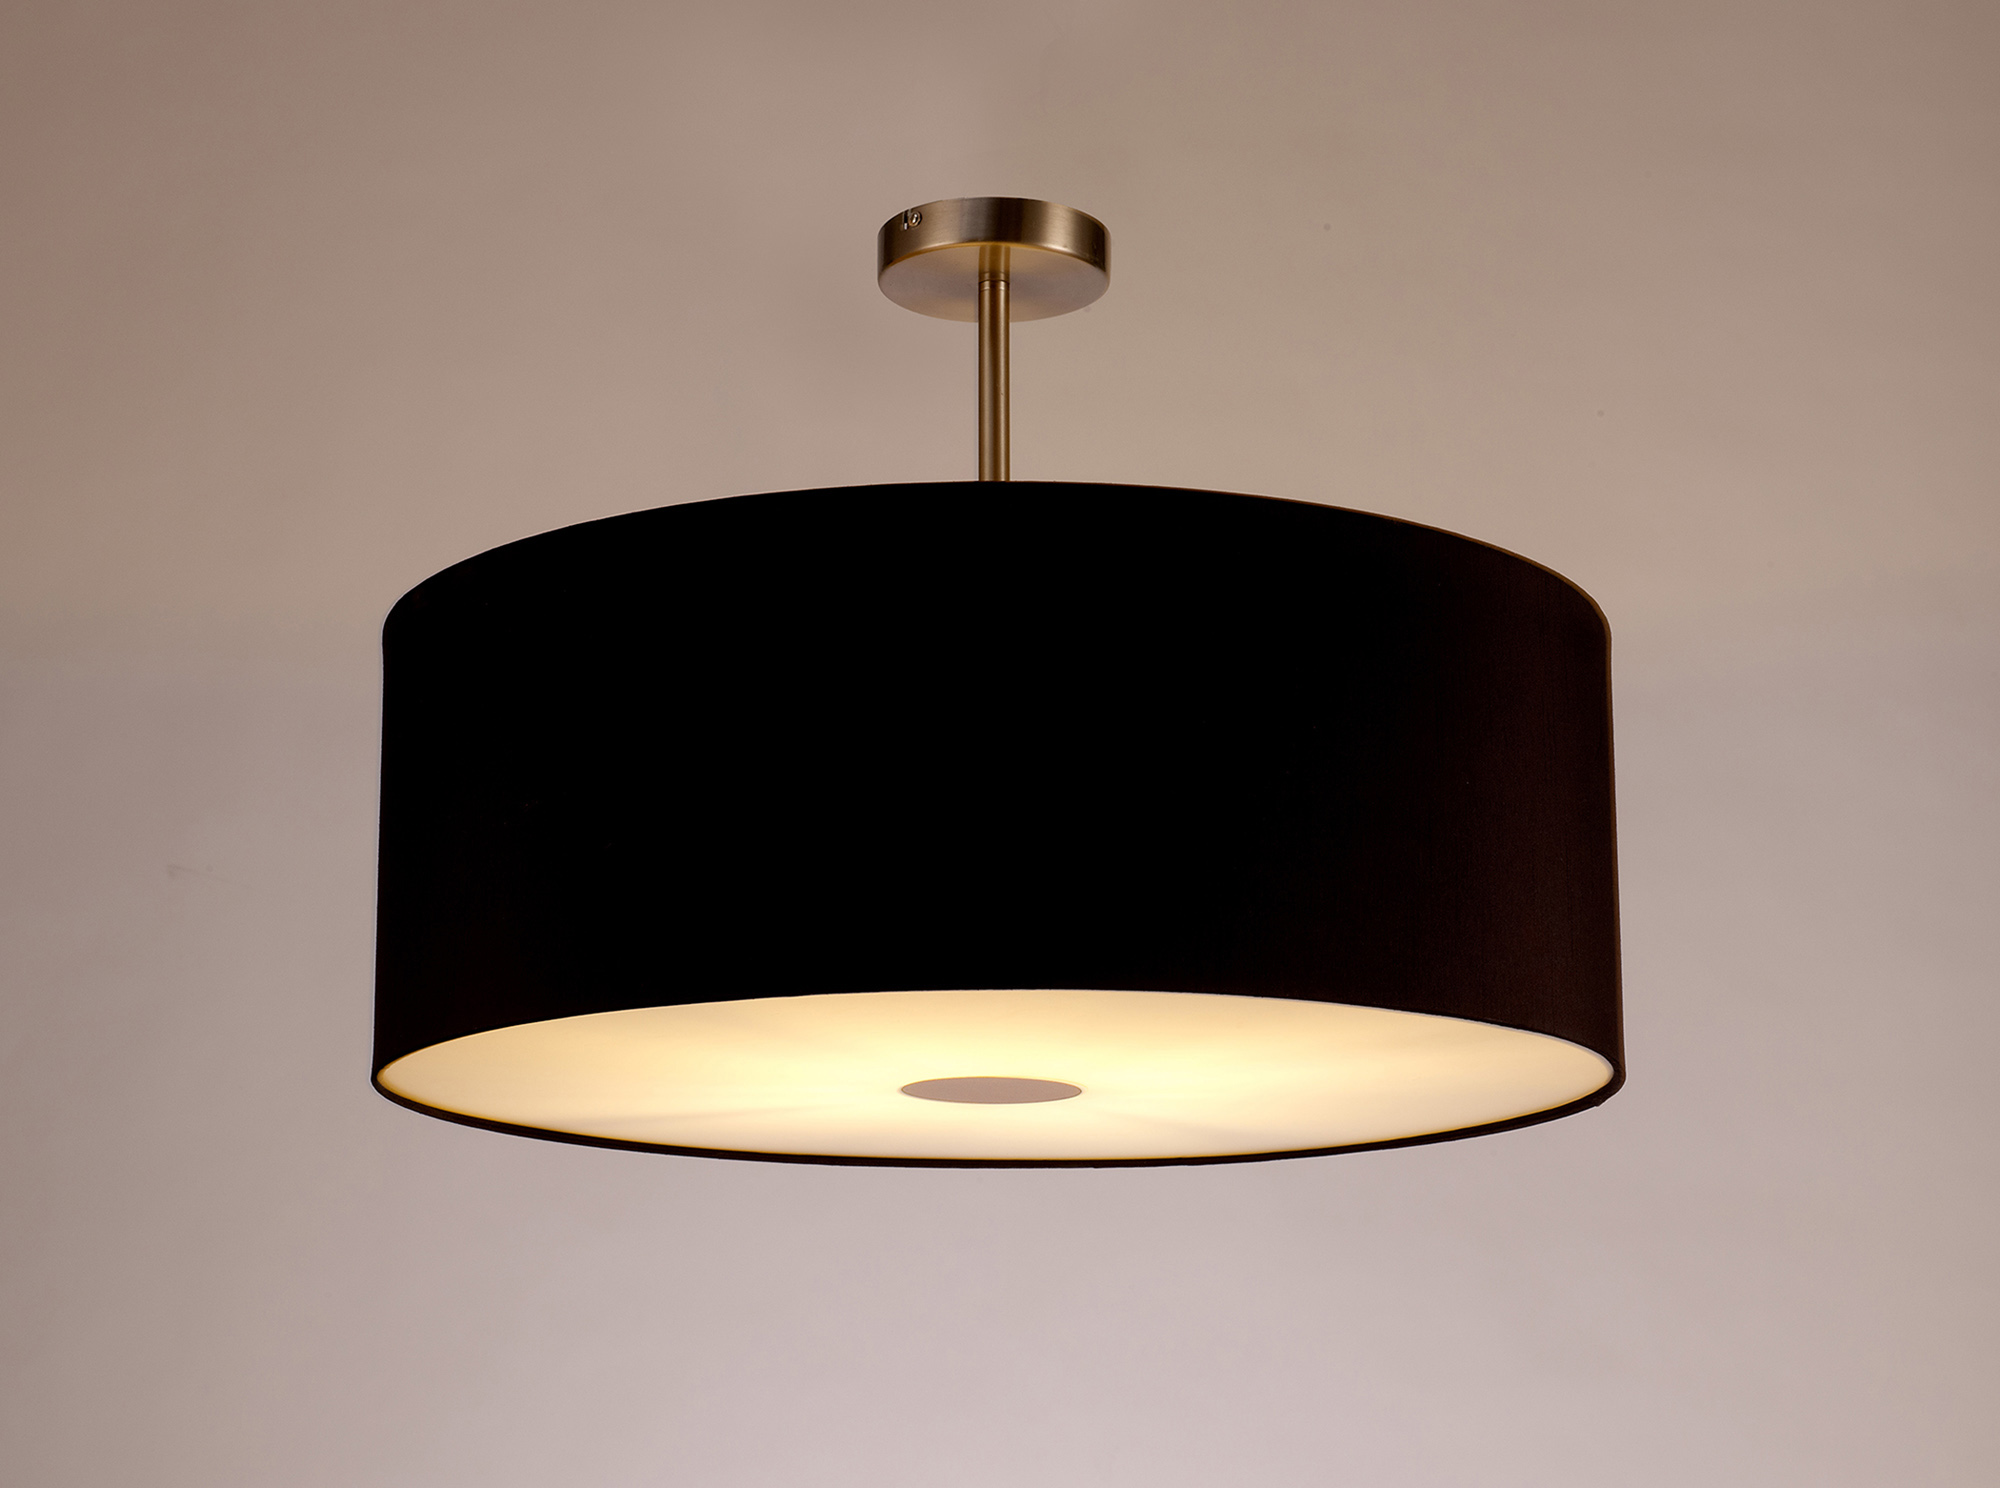 Baymont SN BL/GR Ceiling Lights Deco Contemporary Ceiling Lights